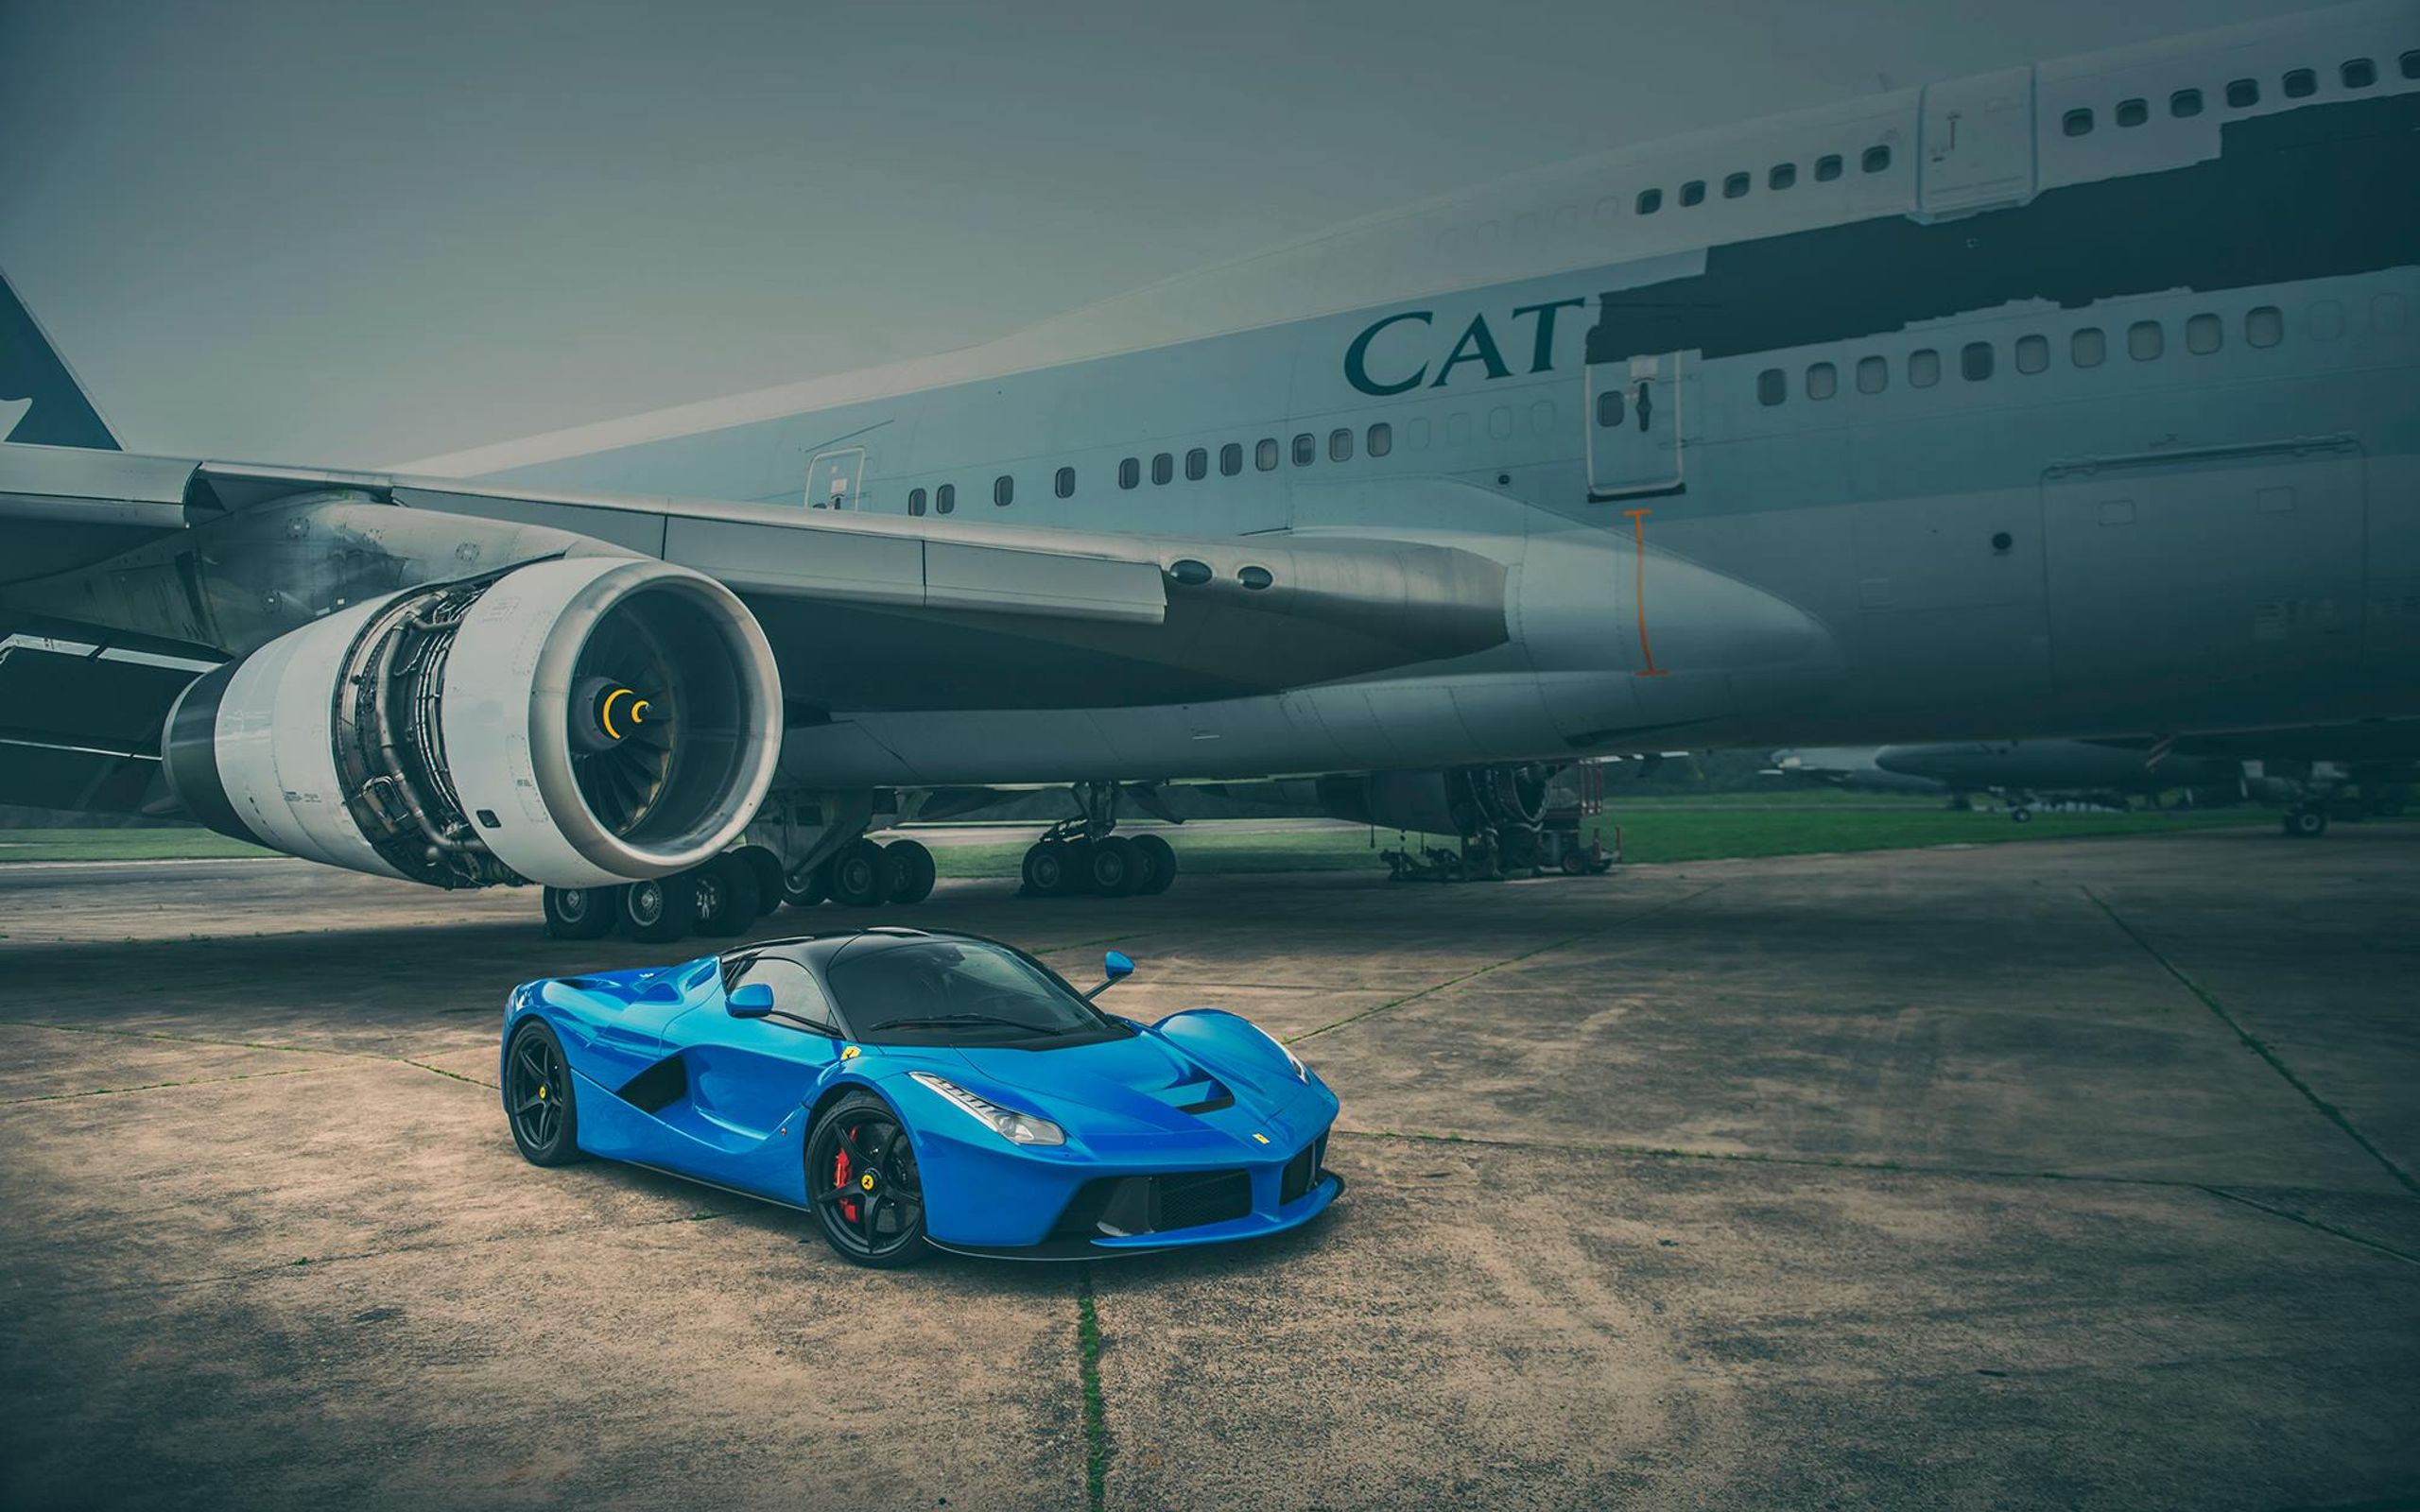 Merveilleux These LaFerrari Wallpapers Show Off The Prancing Horse Looking Classy In  Blue